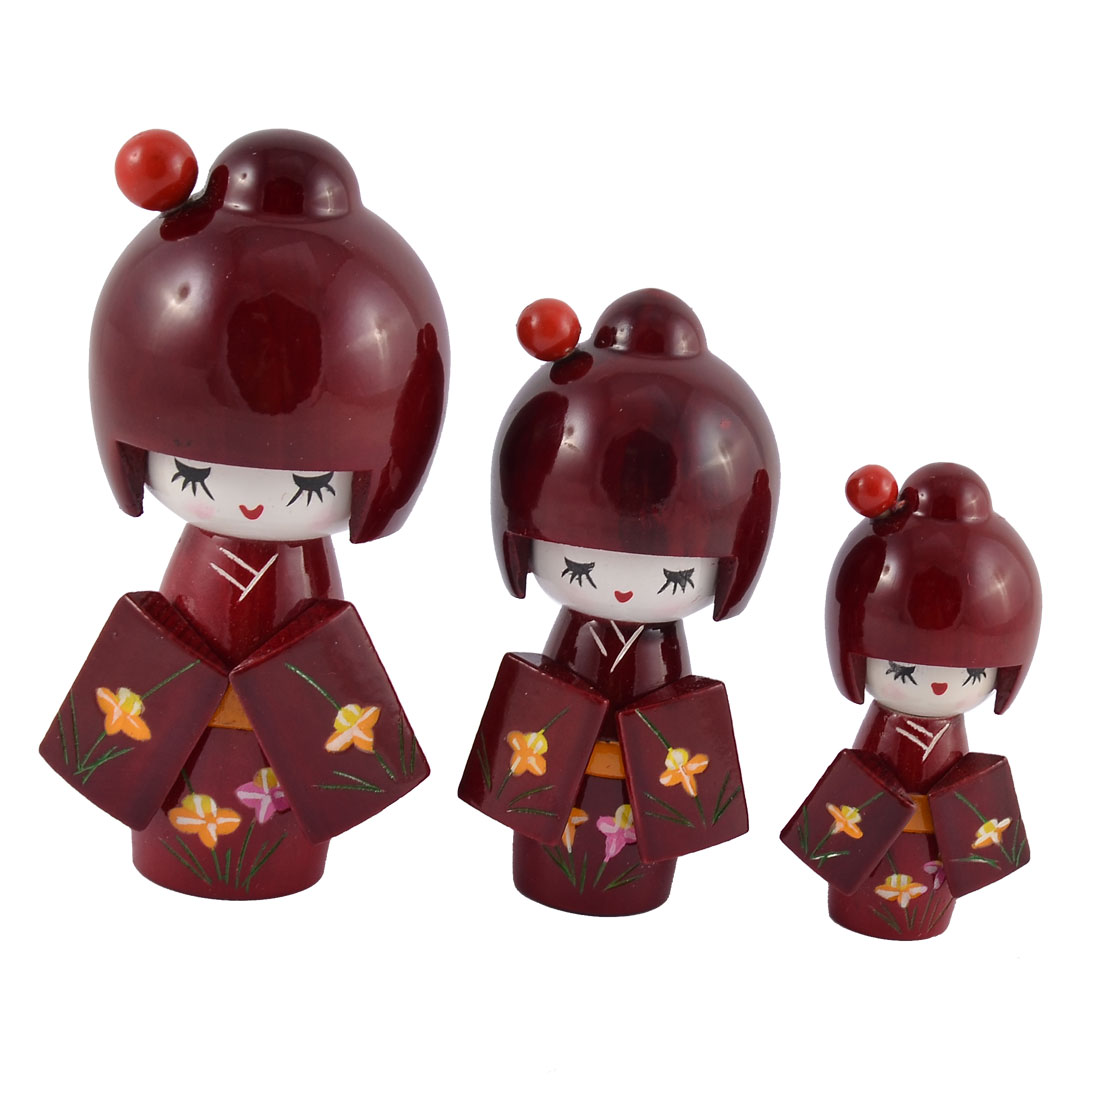 Home Wooden Japanese Doll Girl Desk Desktop Decoration Burgundy 3 in 1